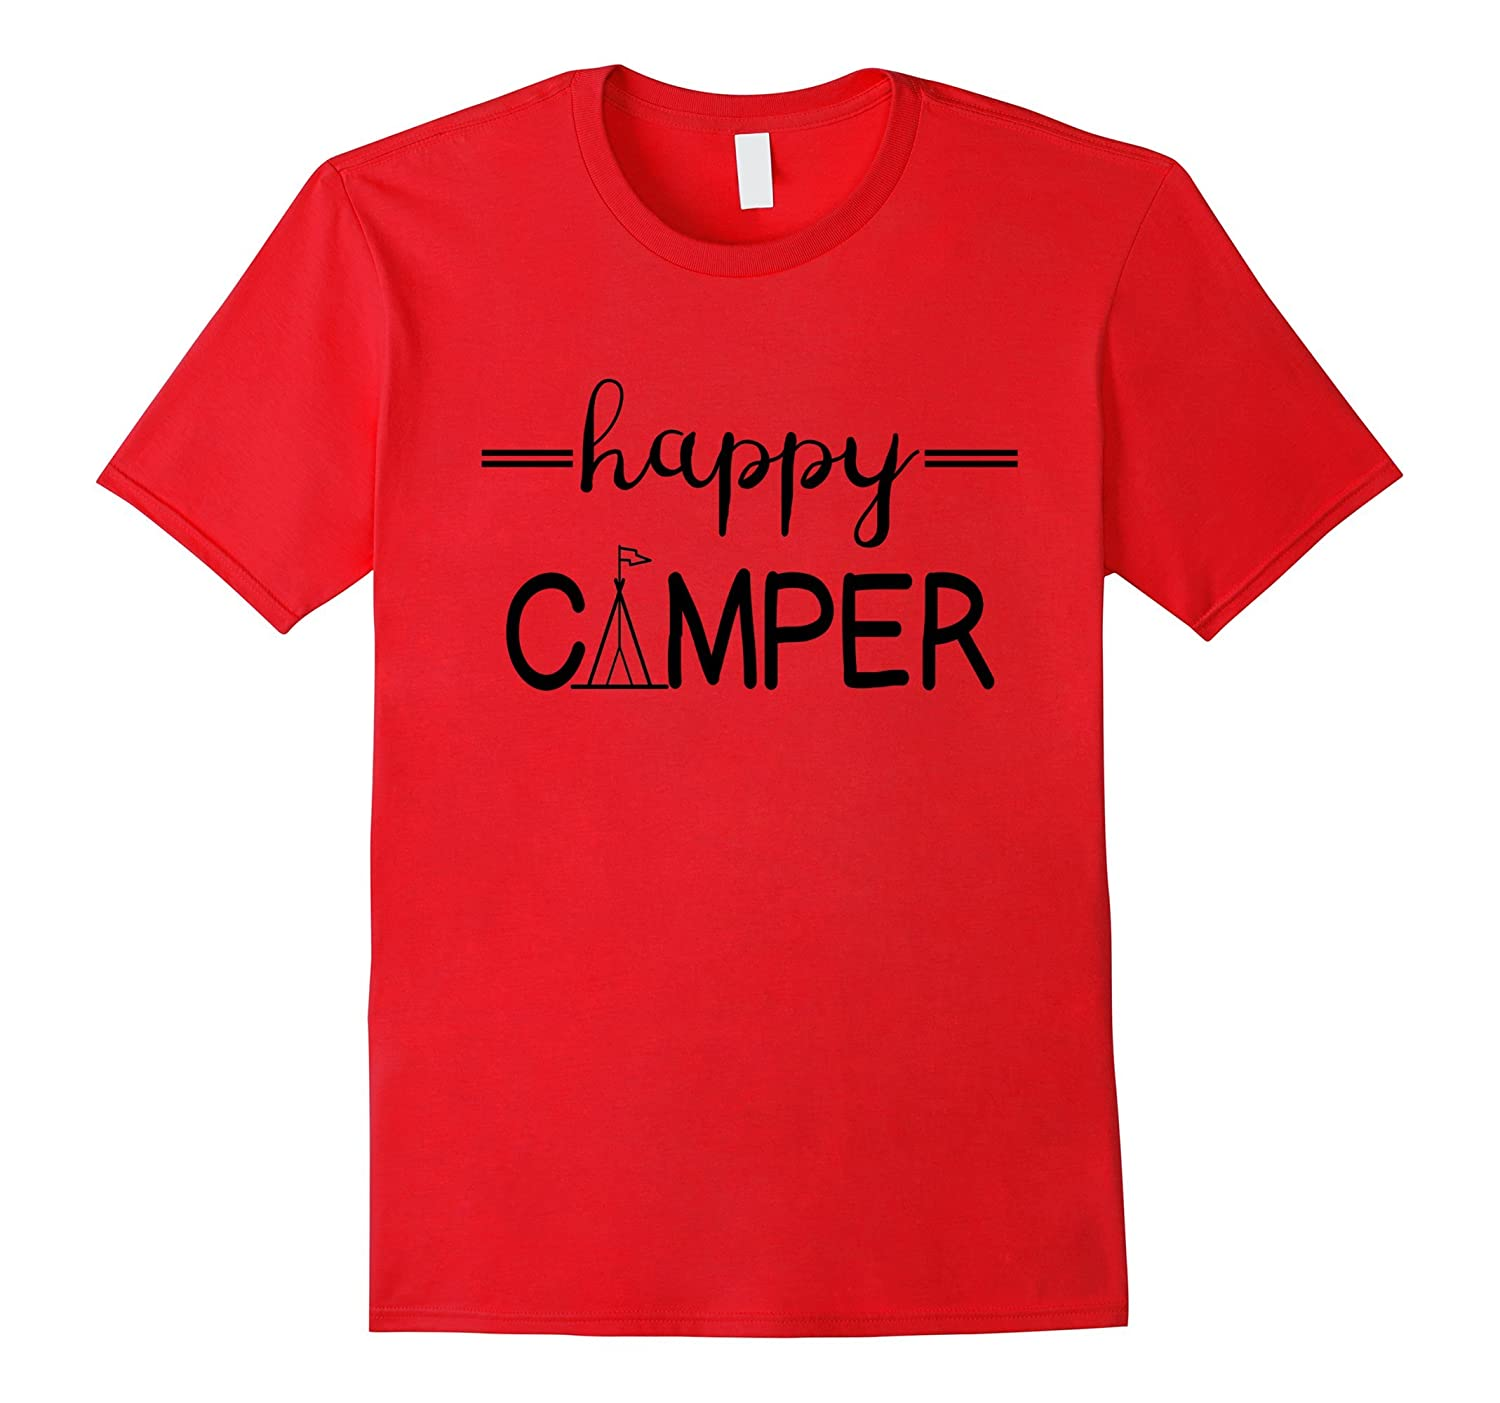 Happy Camper Shirt for Women, Men, and Kids - Letters & Tent-Art